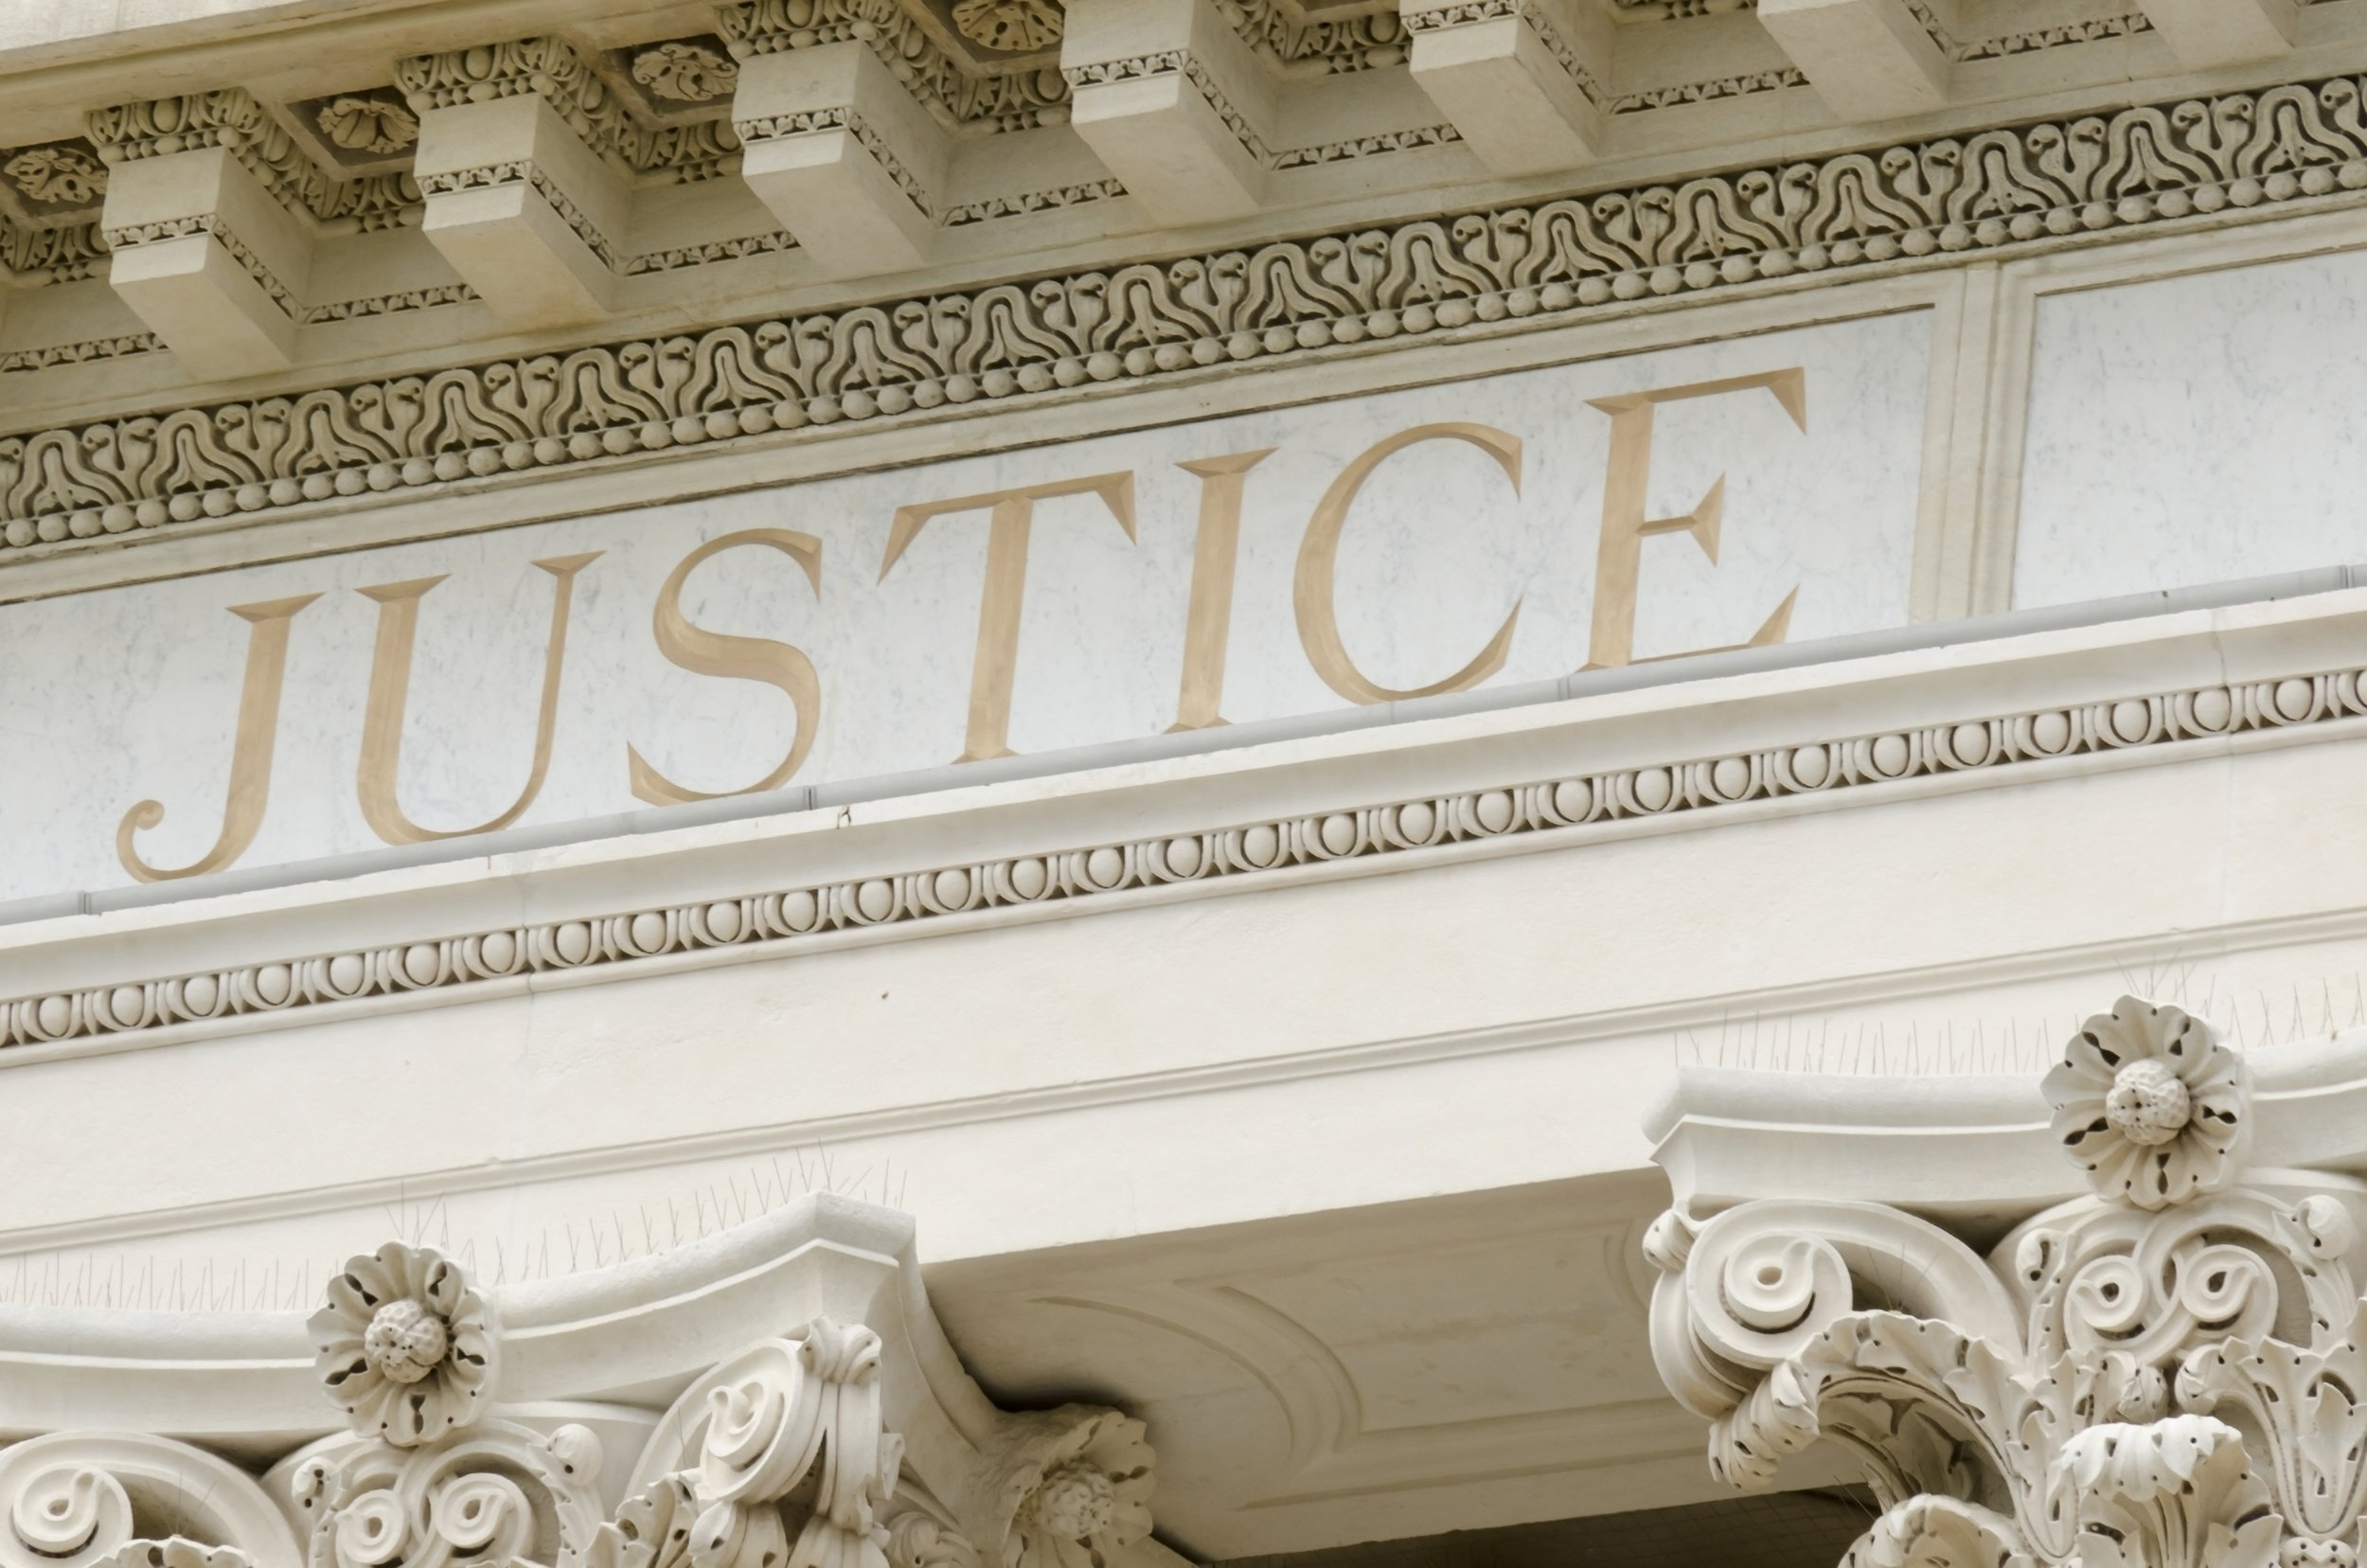 The word Justice on a white building